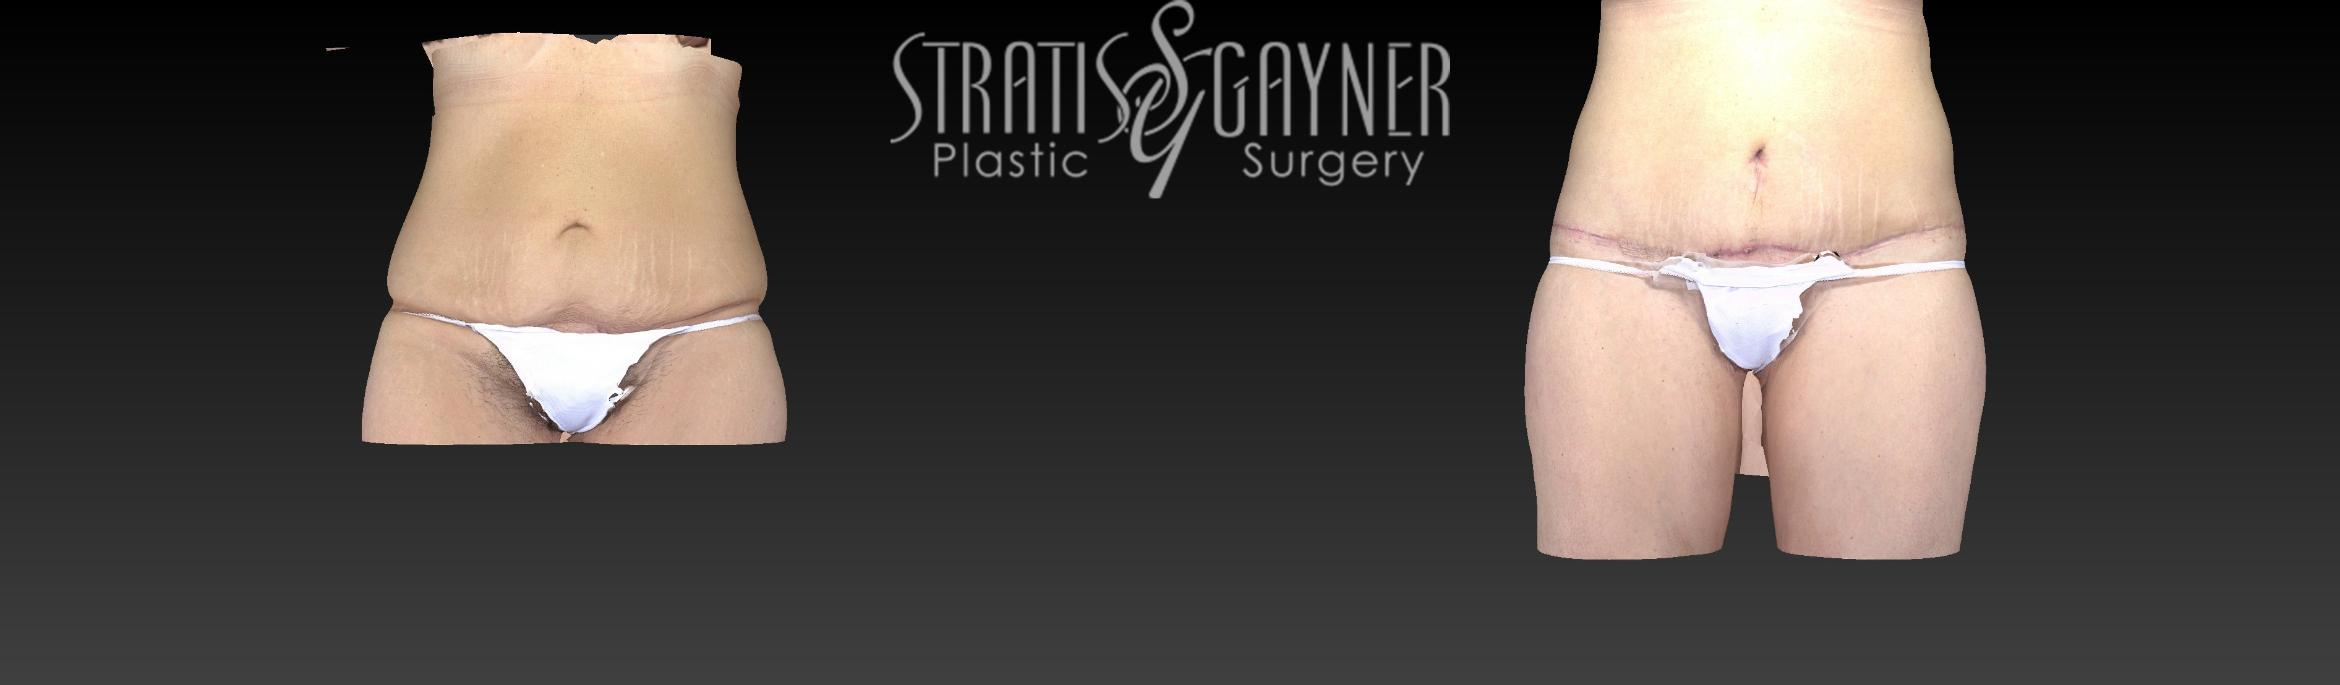 Body Lift Case 159 Before & After View #1 | Harrisburg, PA | Stratis Gayner Plastic Surgery